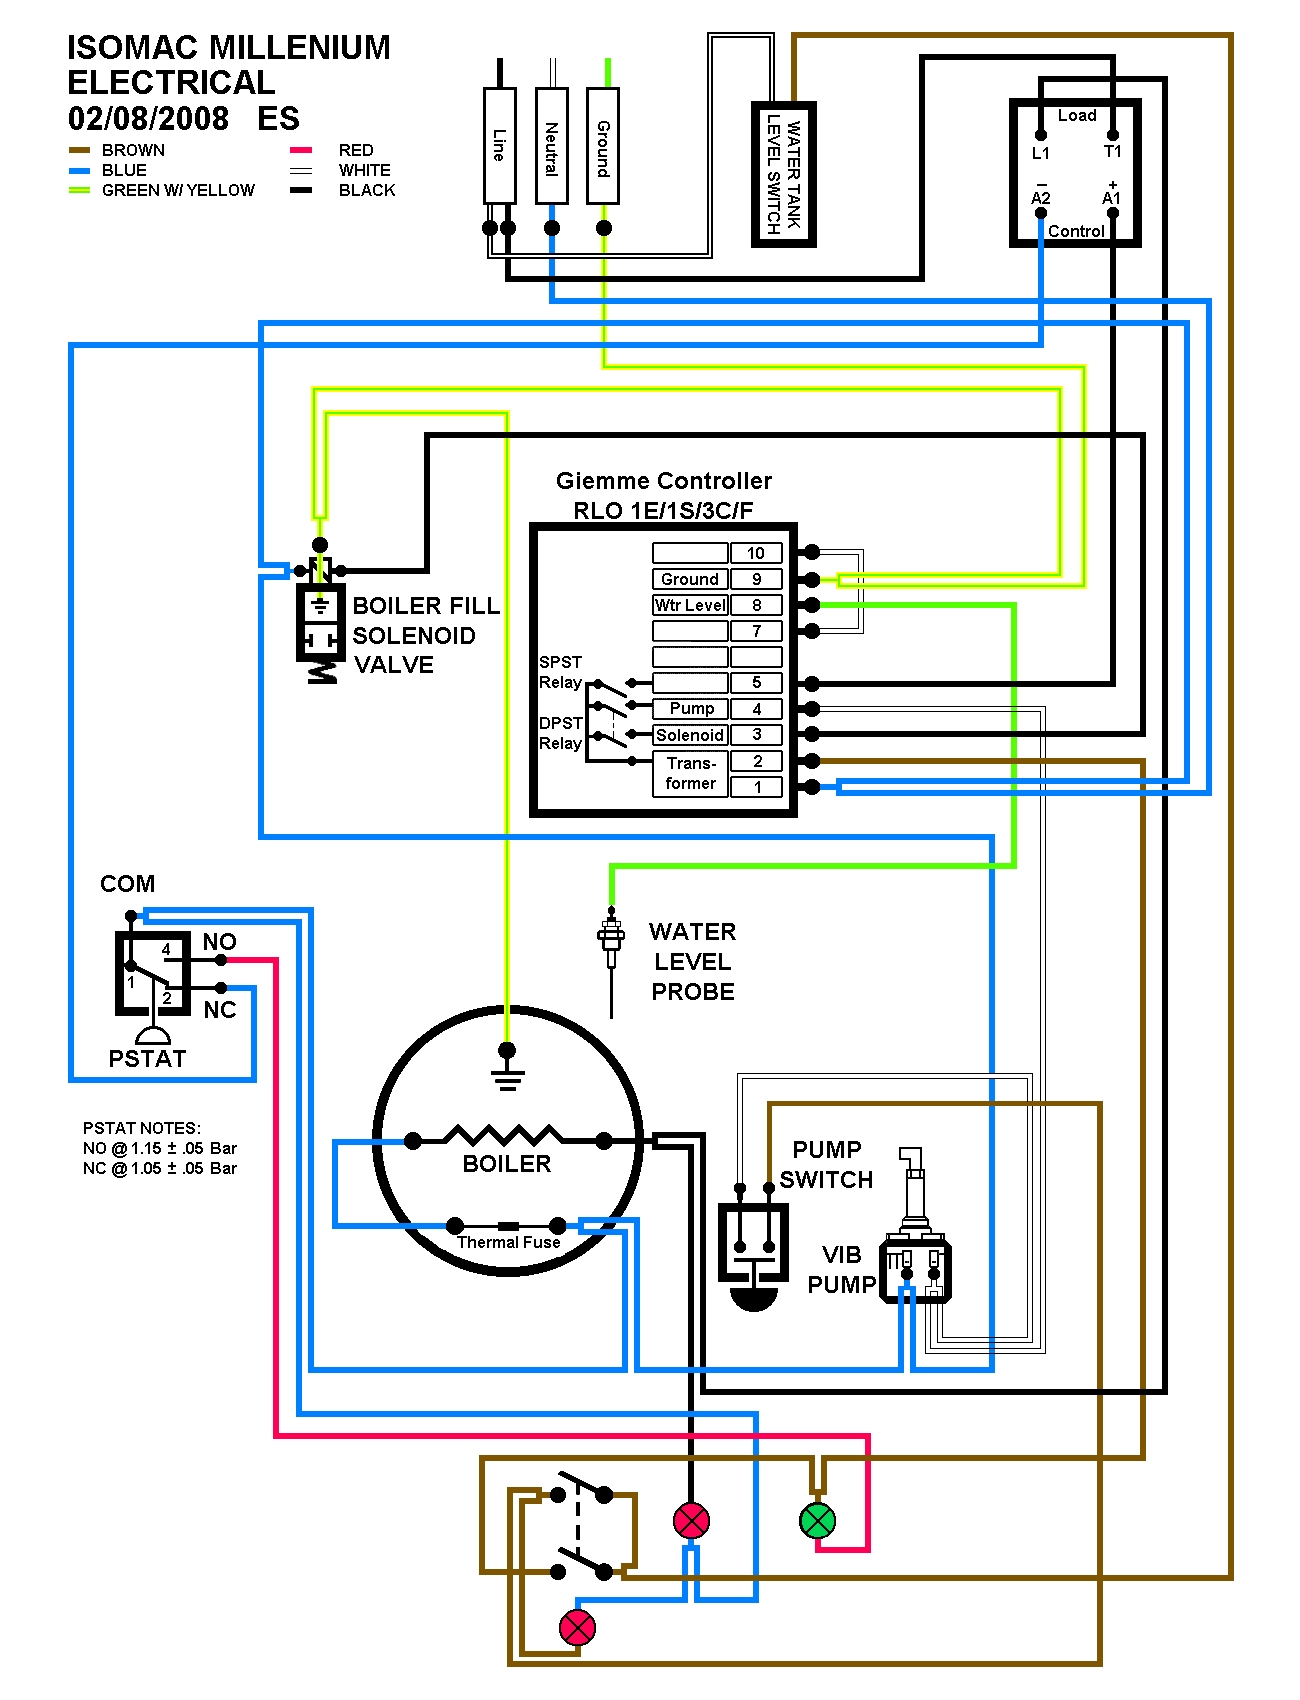 hight resolution of eric s isomac wiring diagram